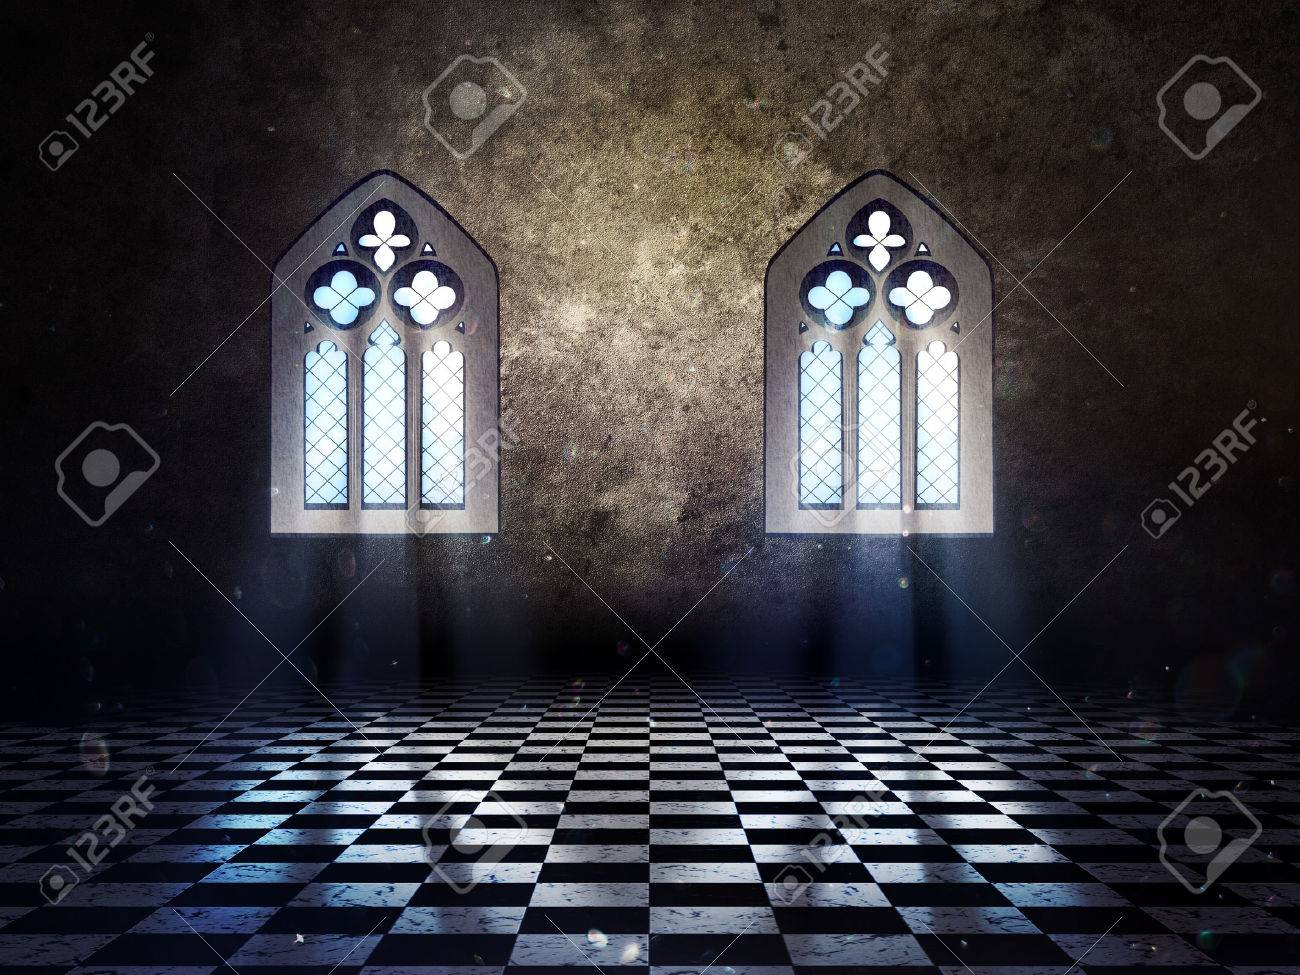 Illustration Of An Abstract Grunge Interior With Gothic Window Stock